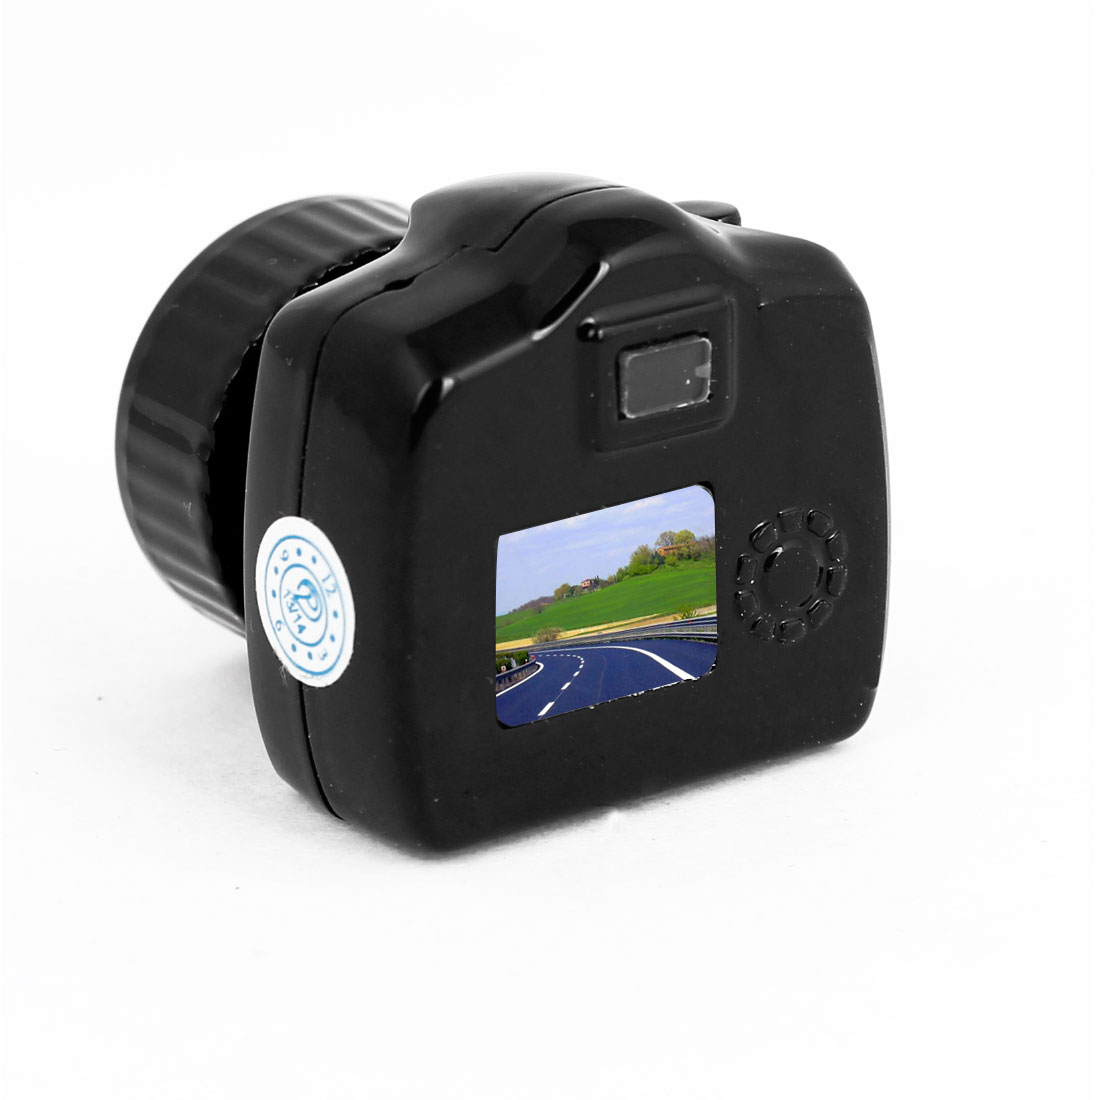 Battery Powered 720x480 Built-in Microphone Mini Camera Camcorder for Car